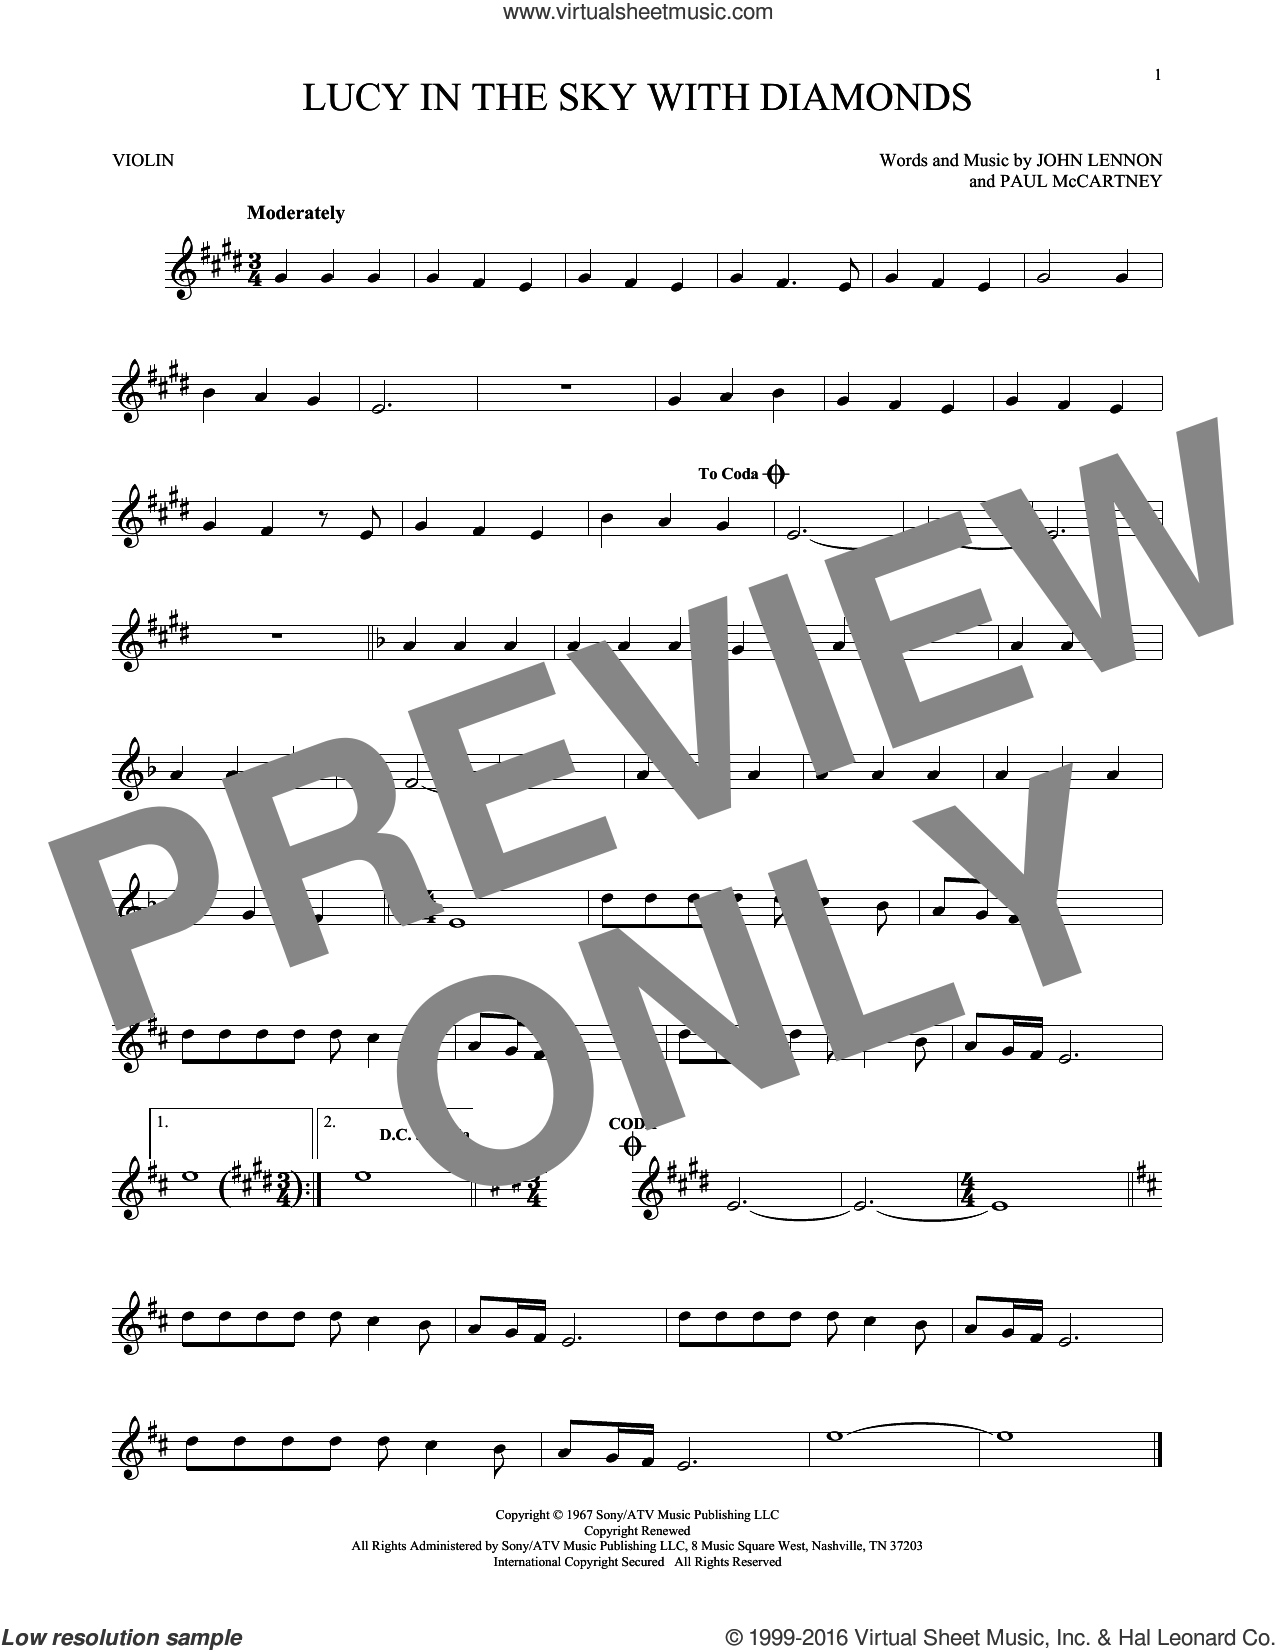 Lucy In The Sky With Diamonds sheet music for violin solo by Paul McCartney